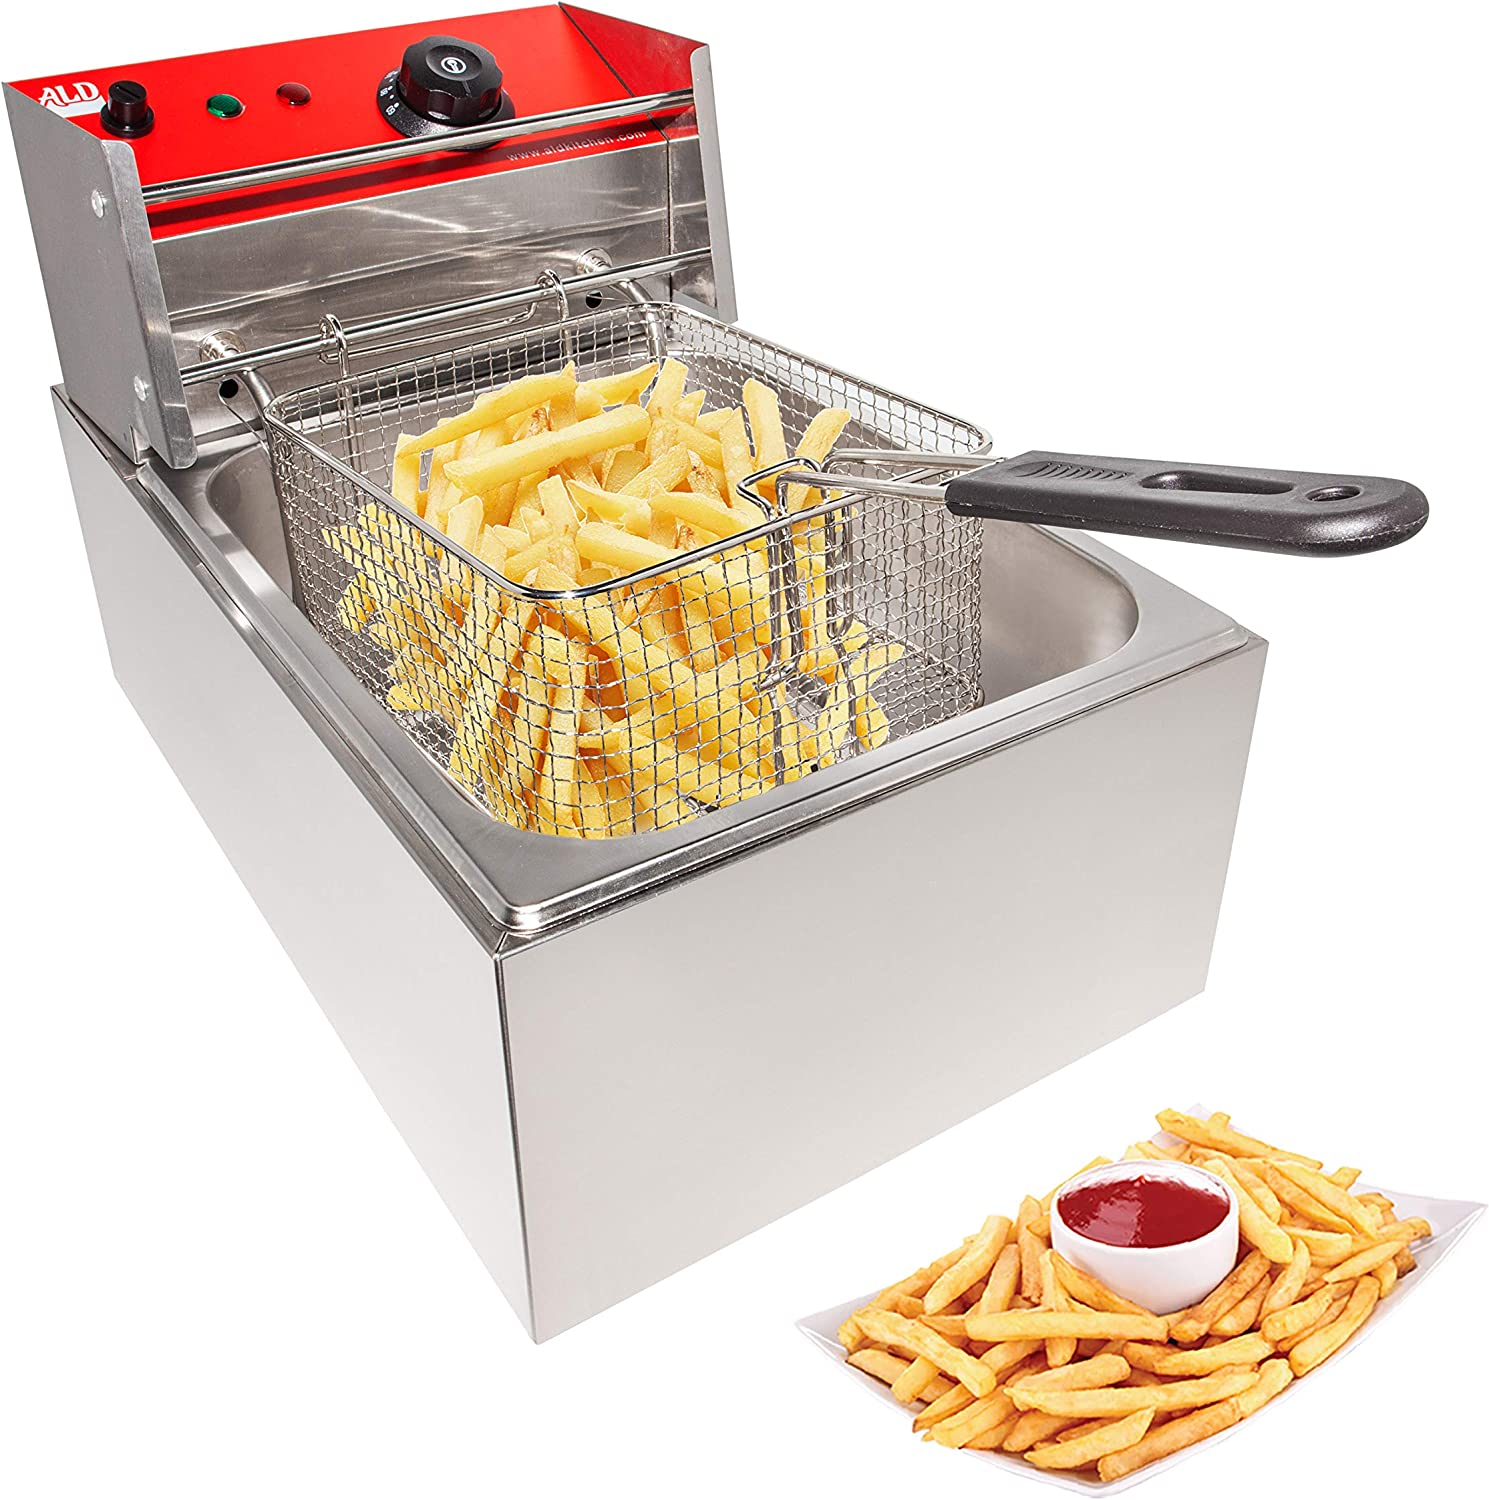 ALDKitchen Deep Fryer | Electric Fryer for Commercial Use | Cooking, Frying and Warming | Stainless Steel | 110V (1 Tank (6L))